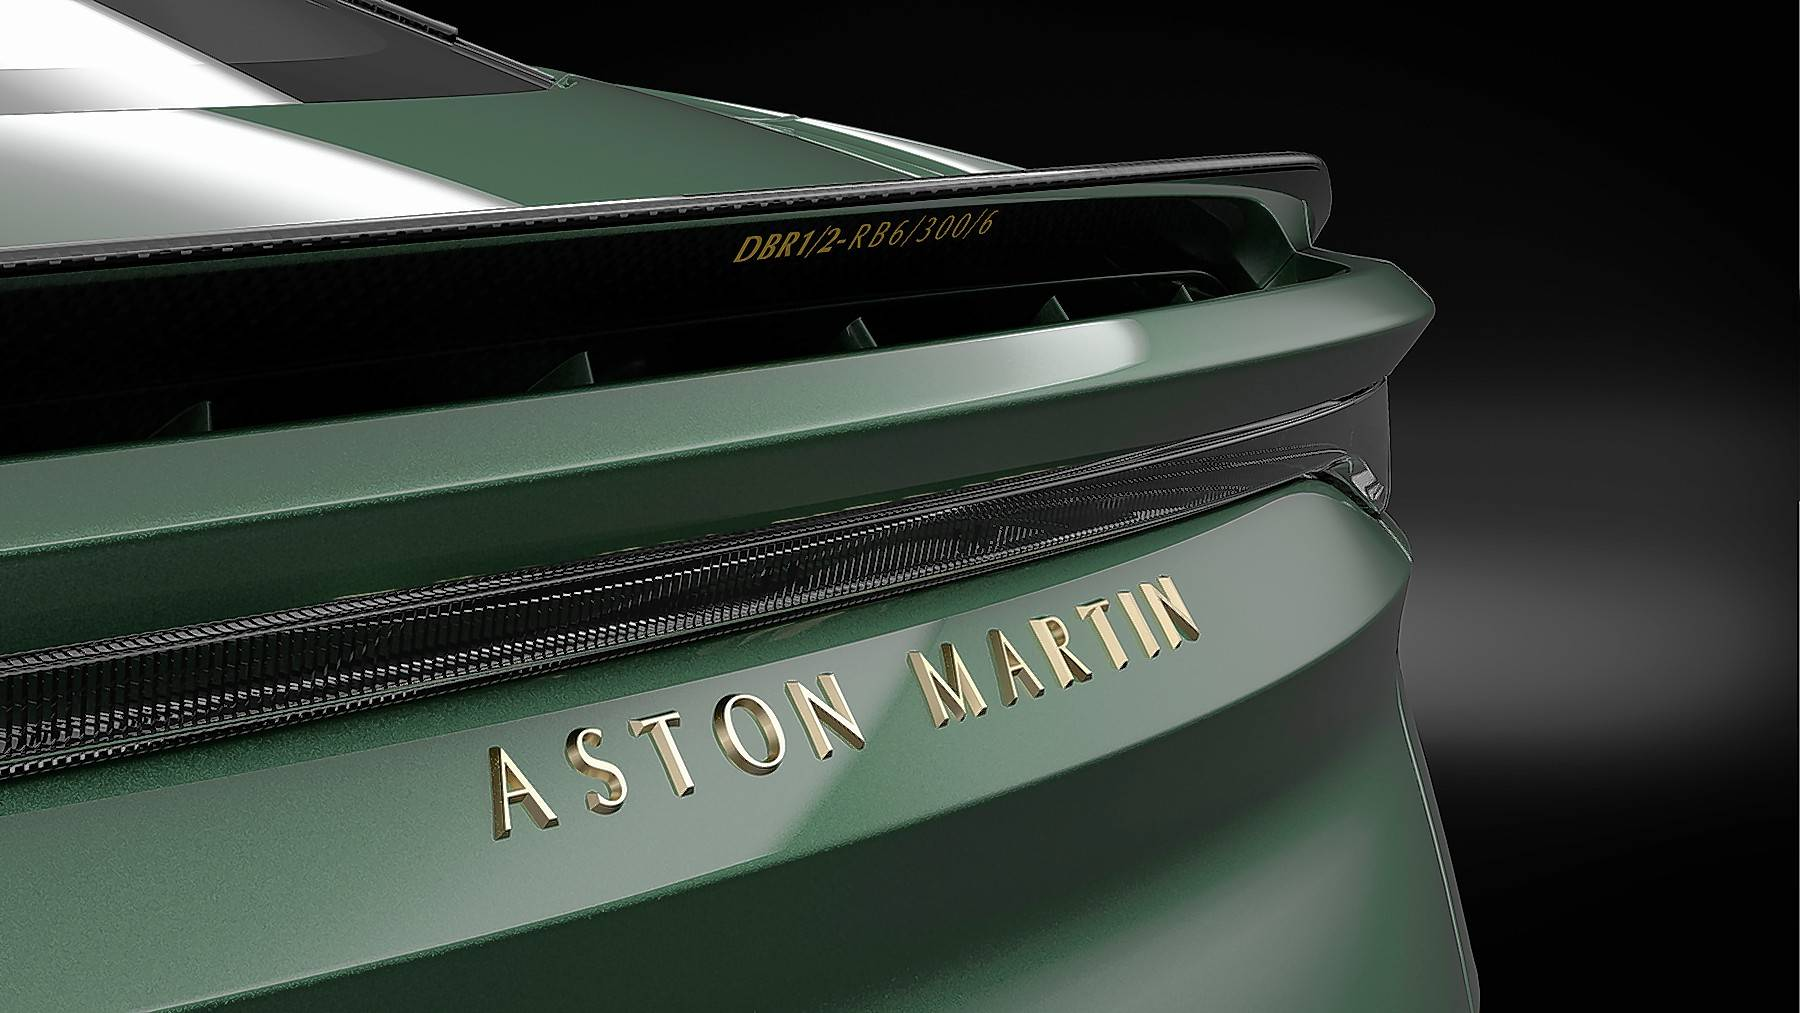 Each of the 24 DBS 59s come with a matching two-piece luggage set a car cover in matching Aston Martin Racing Green.